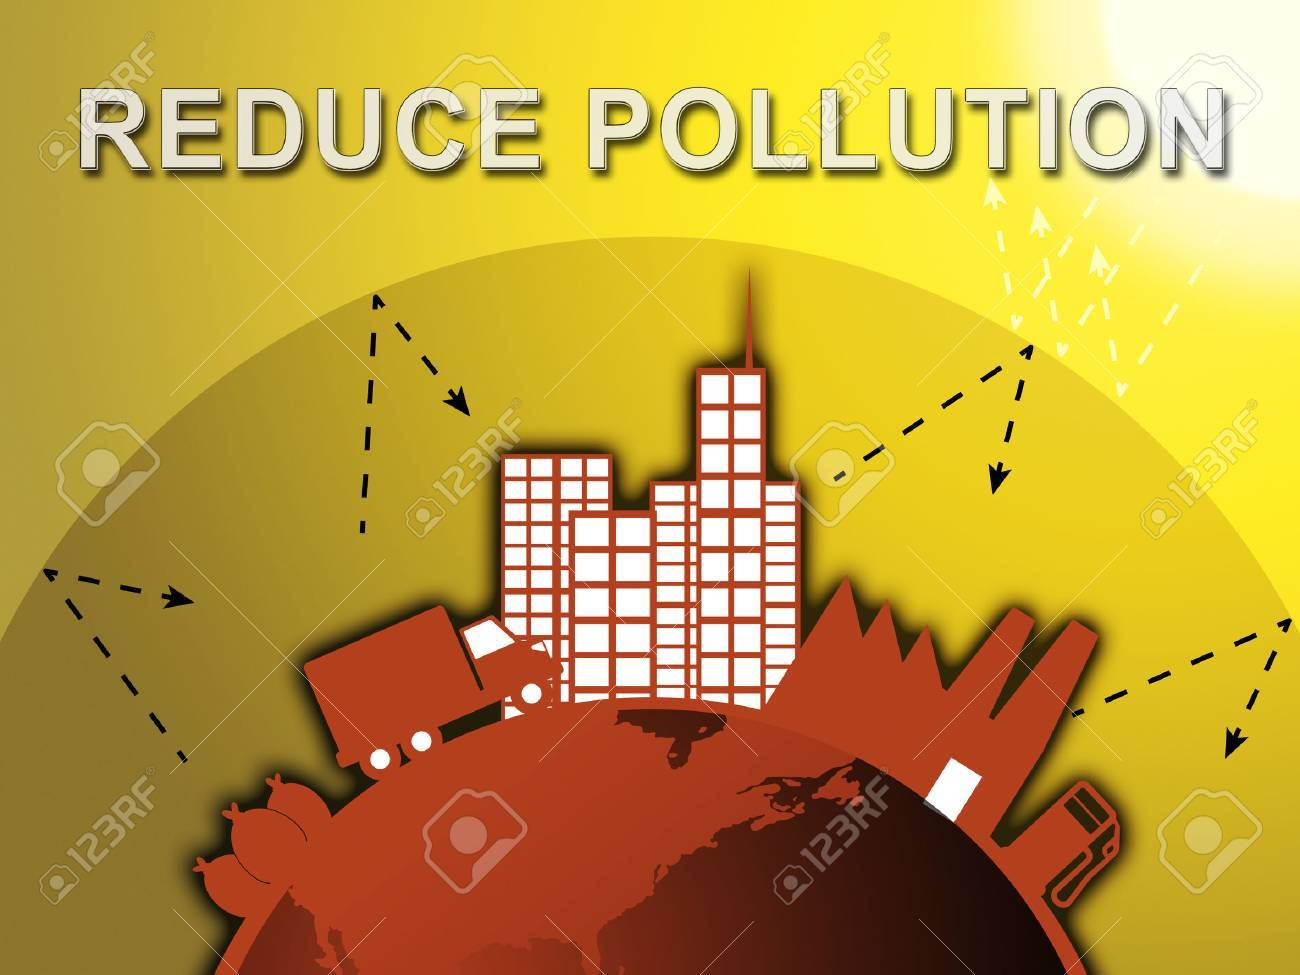 How To Reduse Pollution Reduce Pollution Around City Shows Stopping Filth 3d Illustration